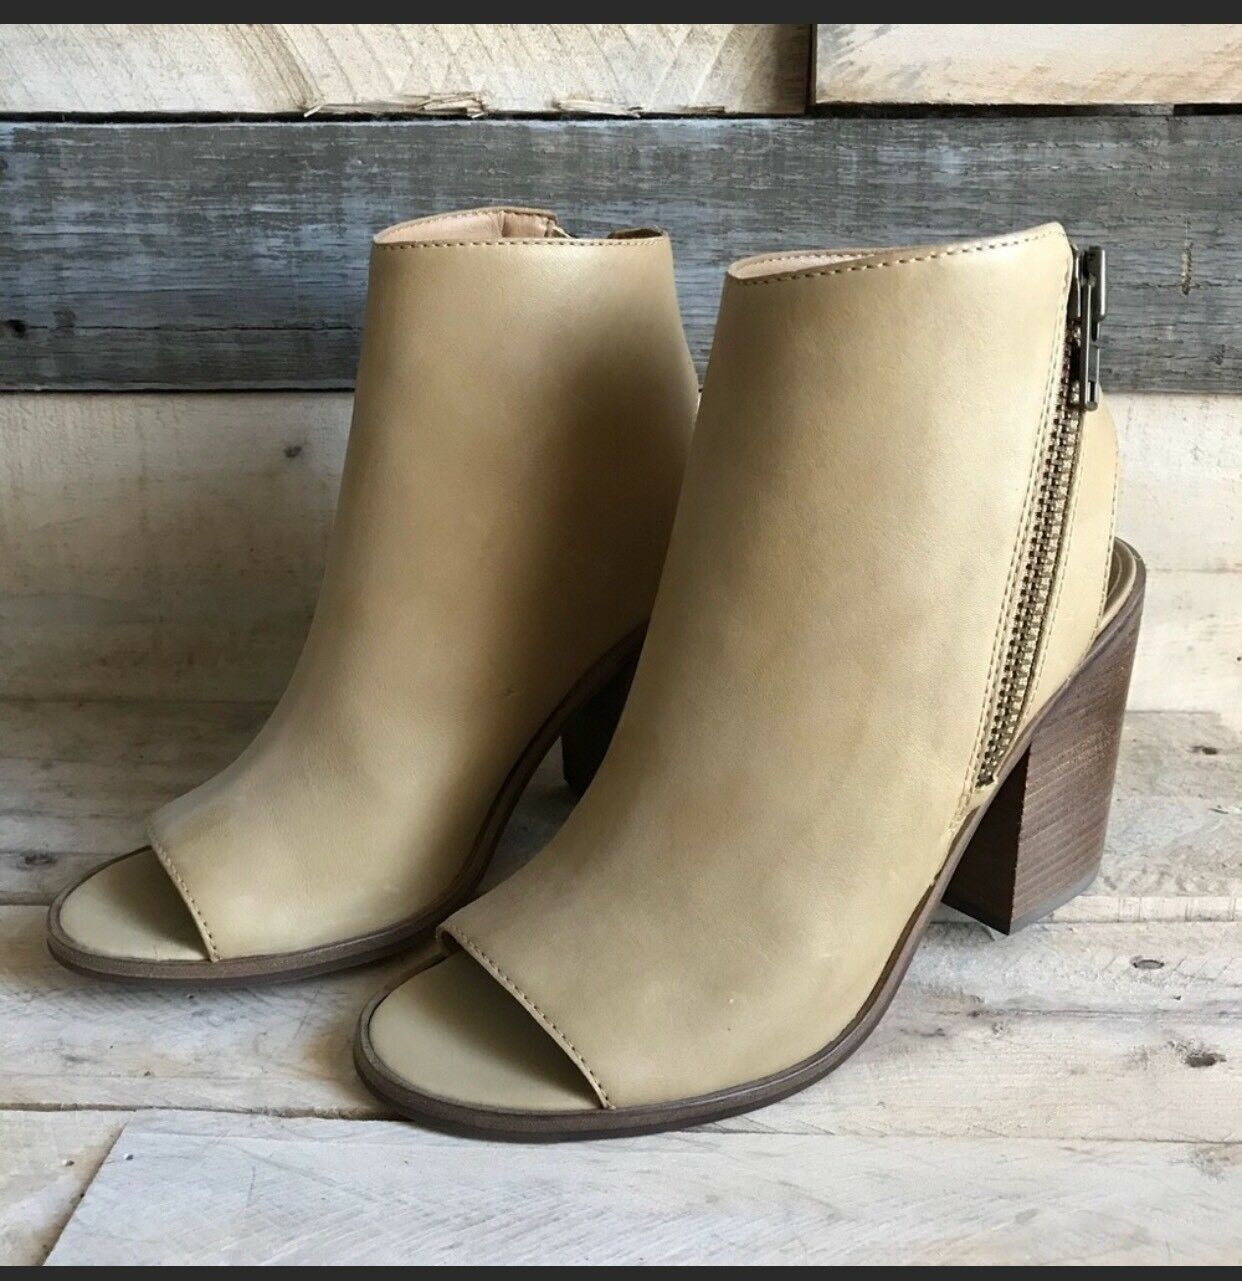 Steve Madden femmes 8.5 Terraa Leather Open Toe démarrageies Heels Ankle bottes Zipper